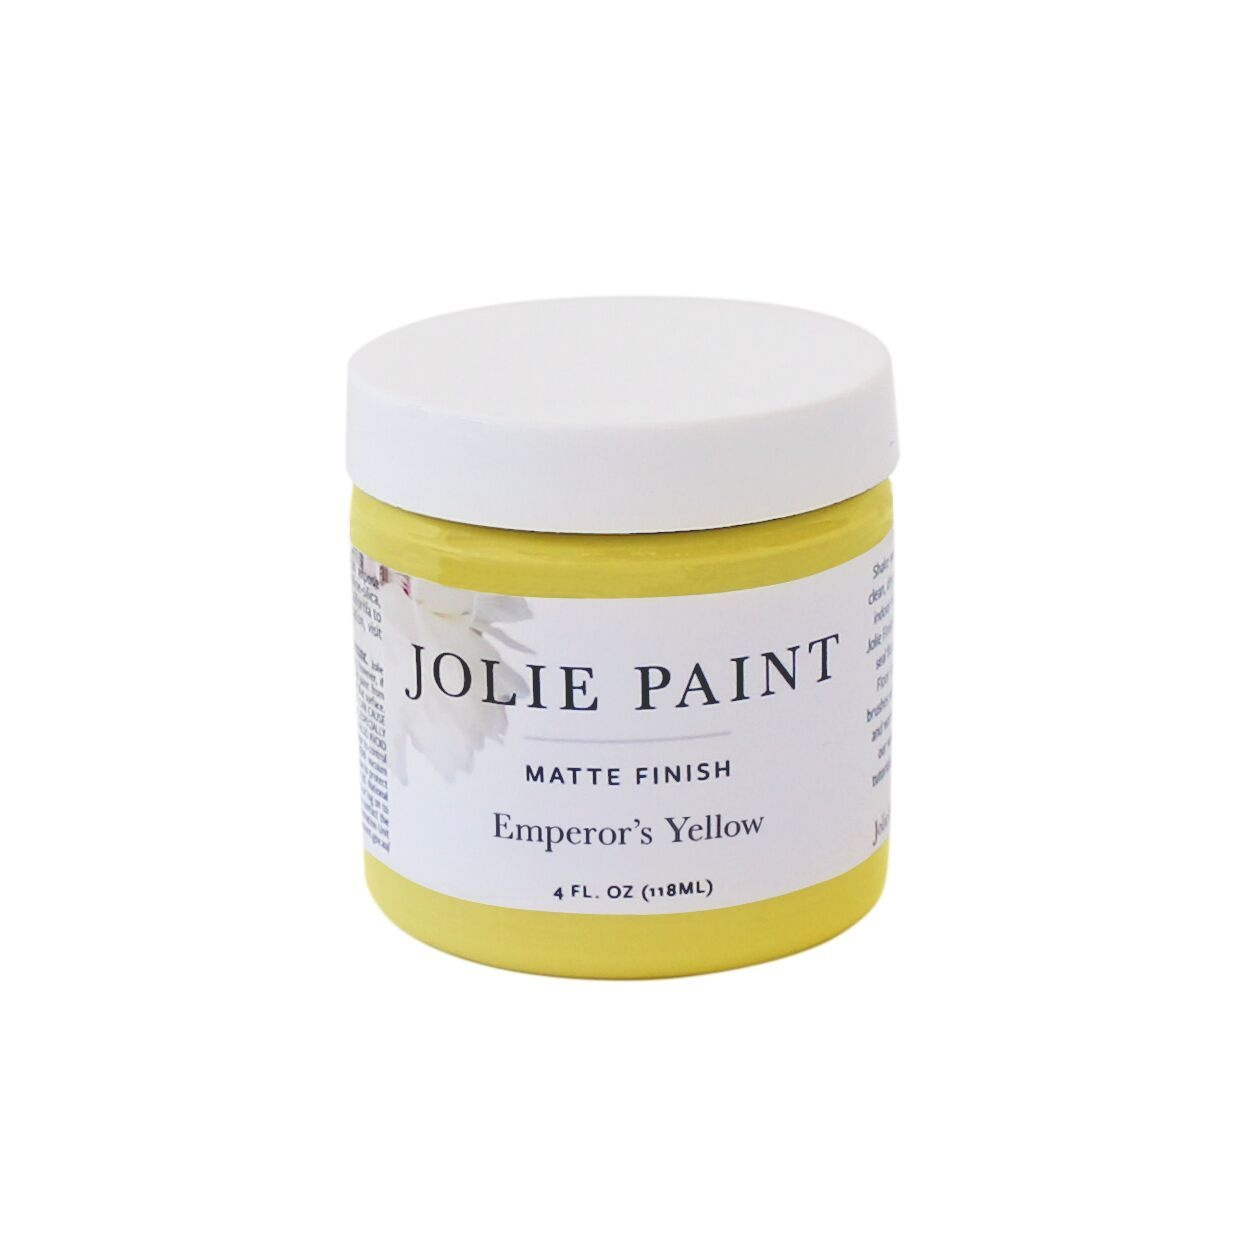 Jolie Home Emperor's Yellow Matte Finish Paint